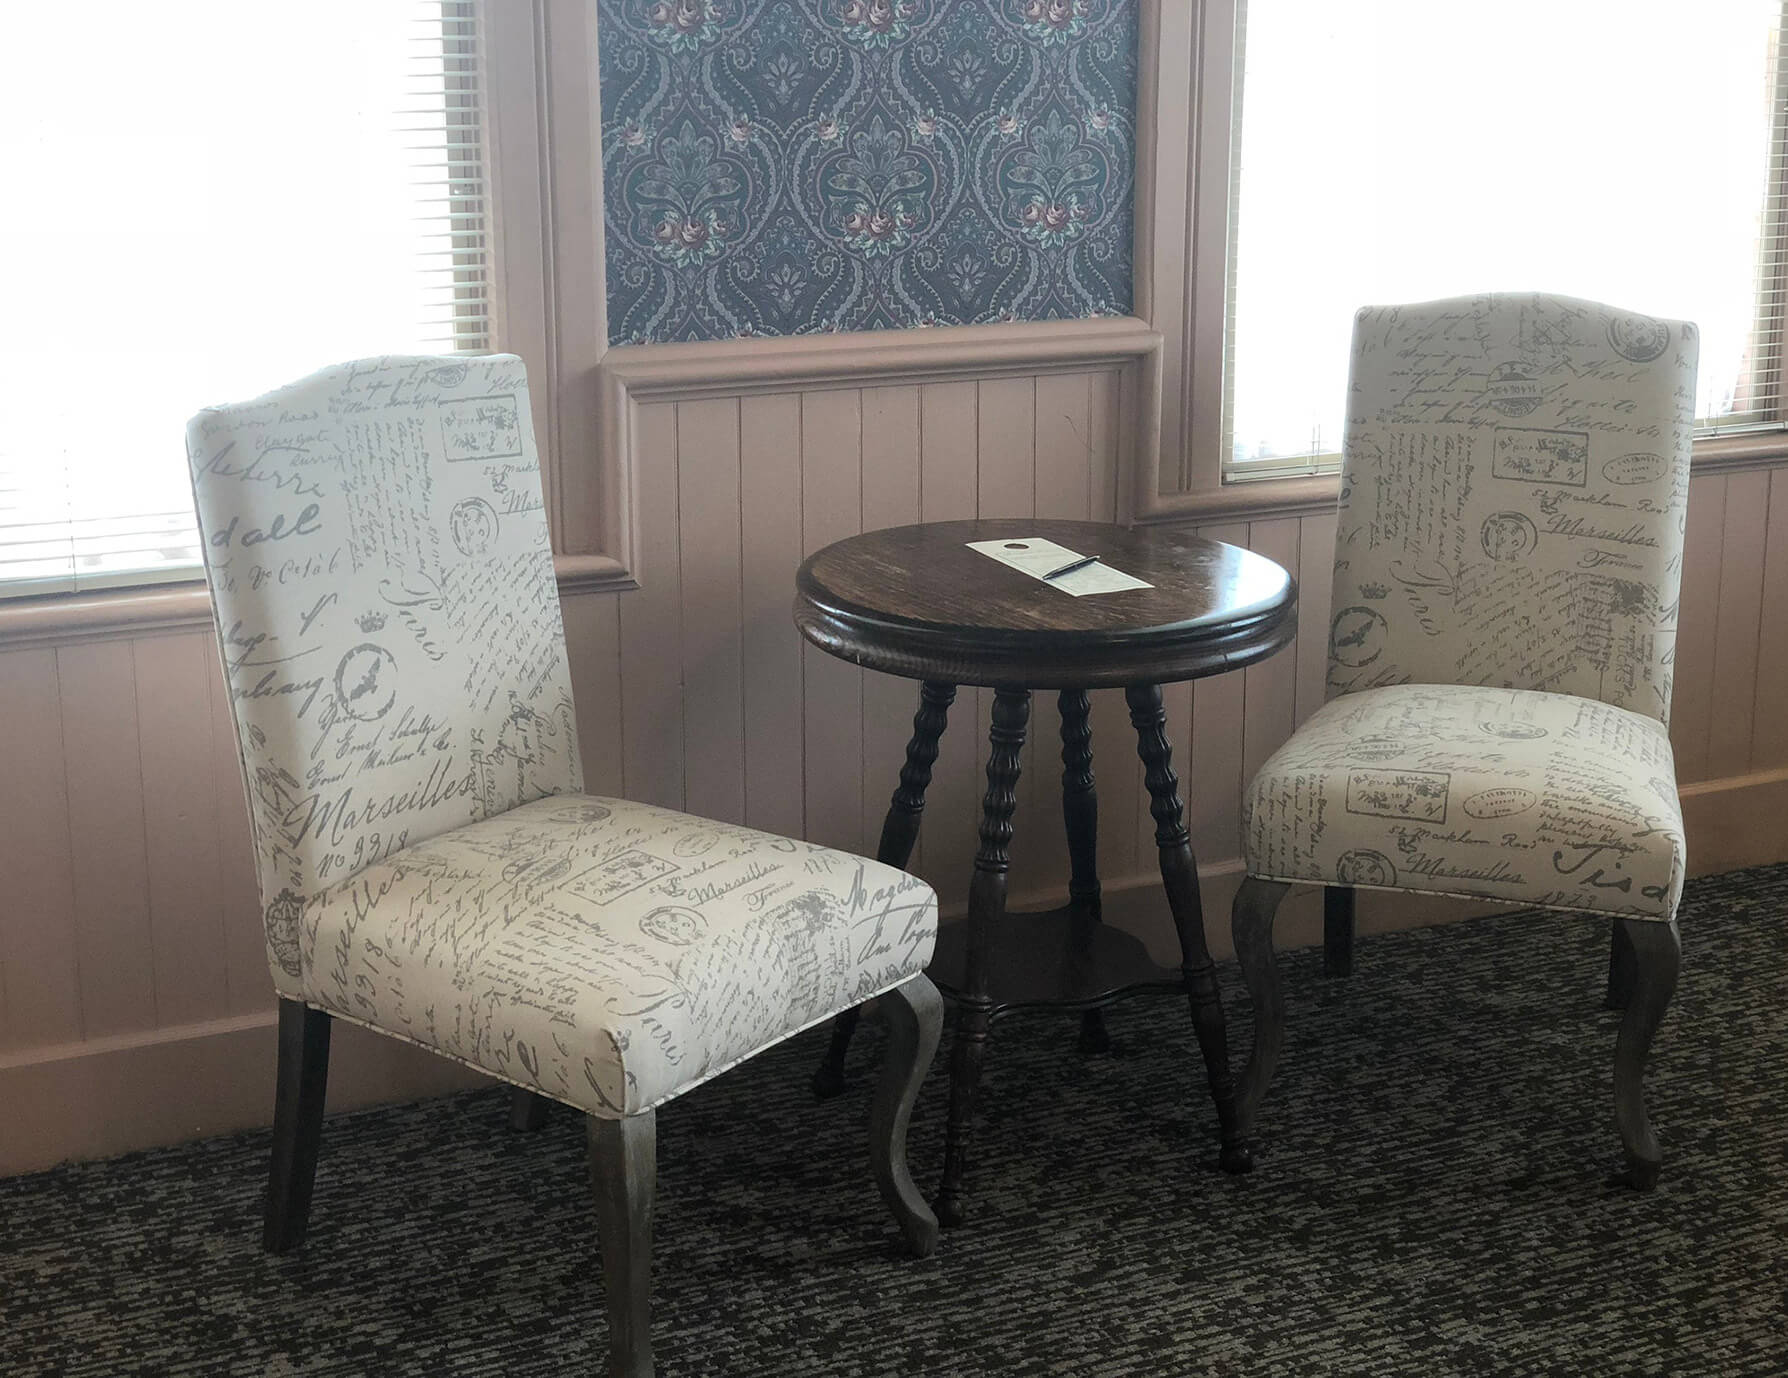 Le Lycee room seating area with small table - Tanglewood Lodging